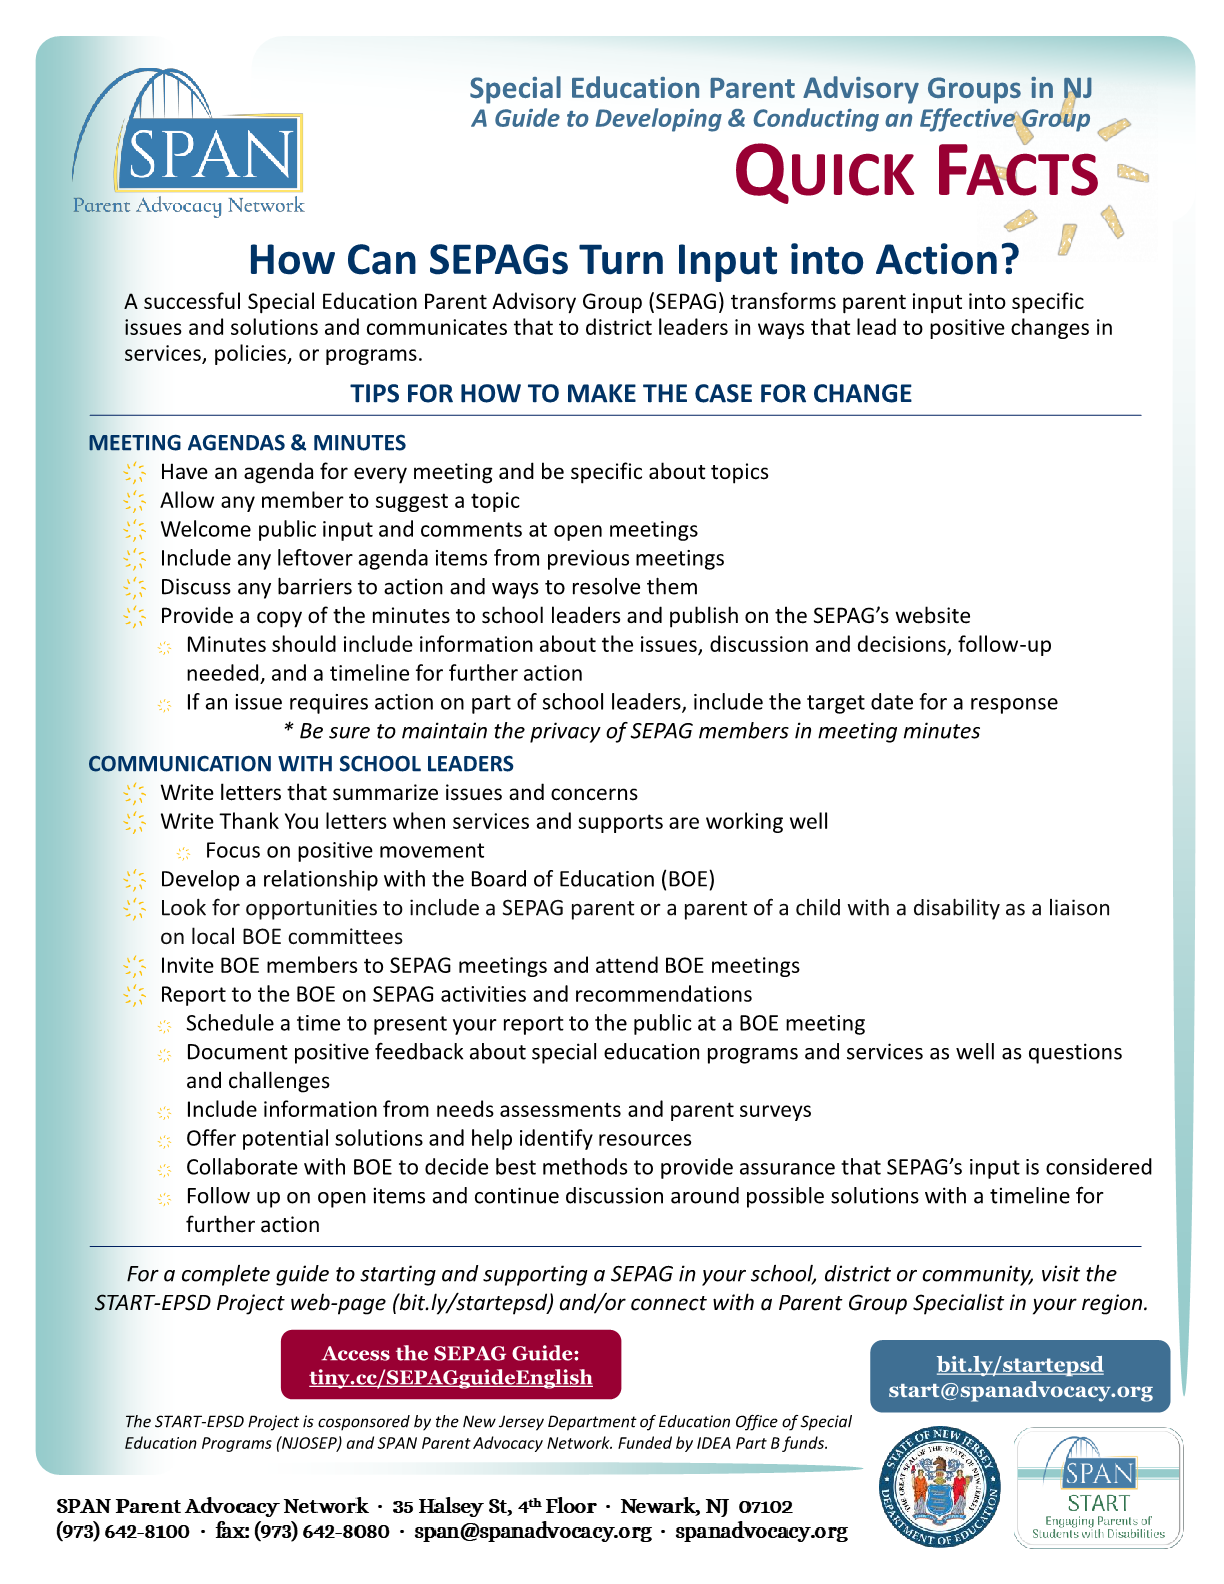 How Can SEPAGs Turn Input into Action? | Quick Guide